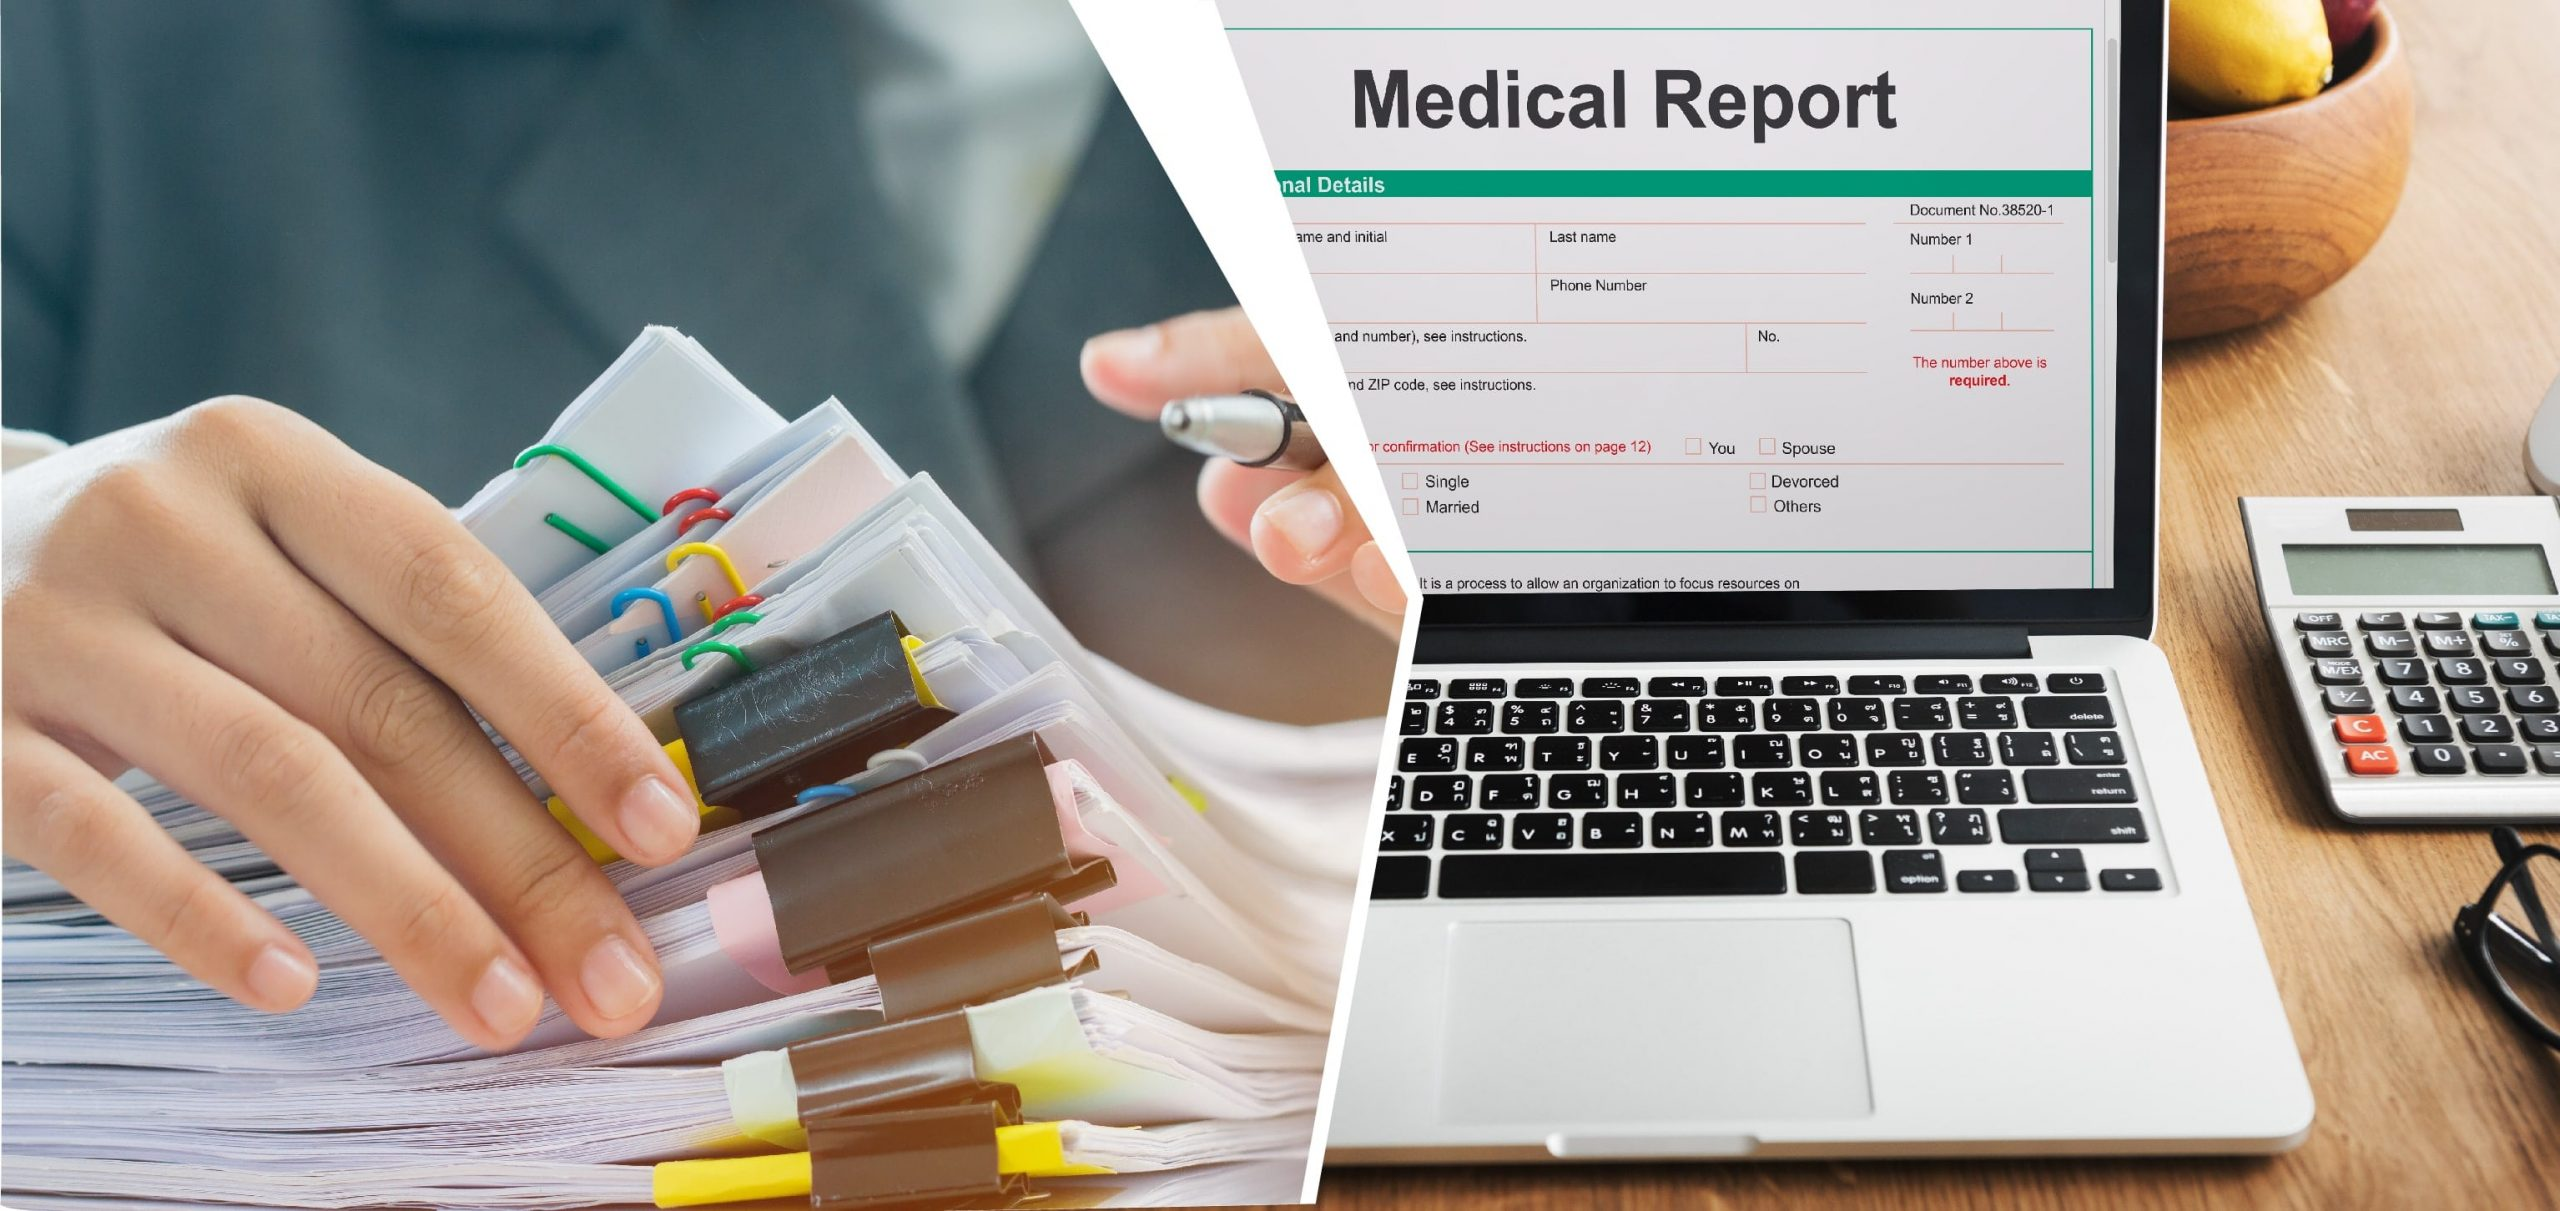 Scanning Medical Records Could Improve Efficiency in Healthcare